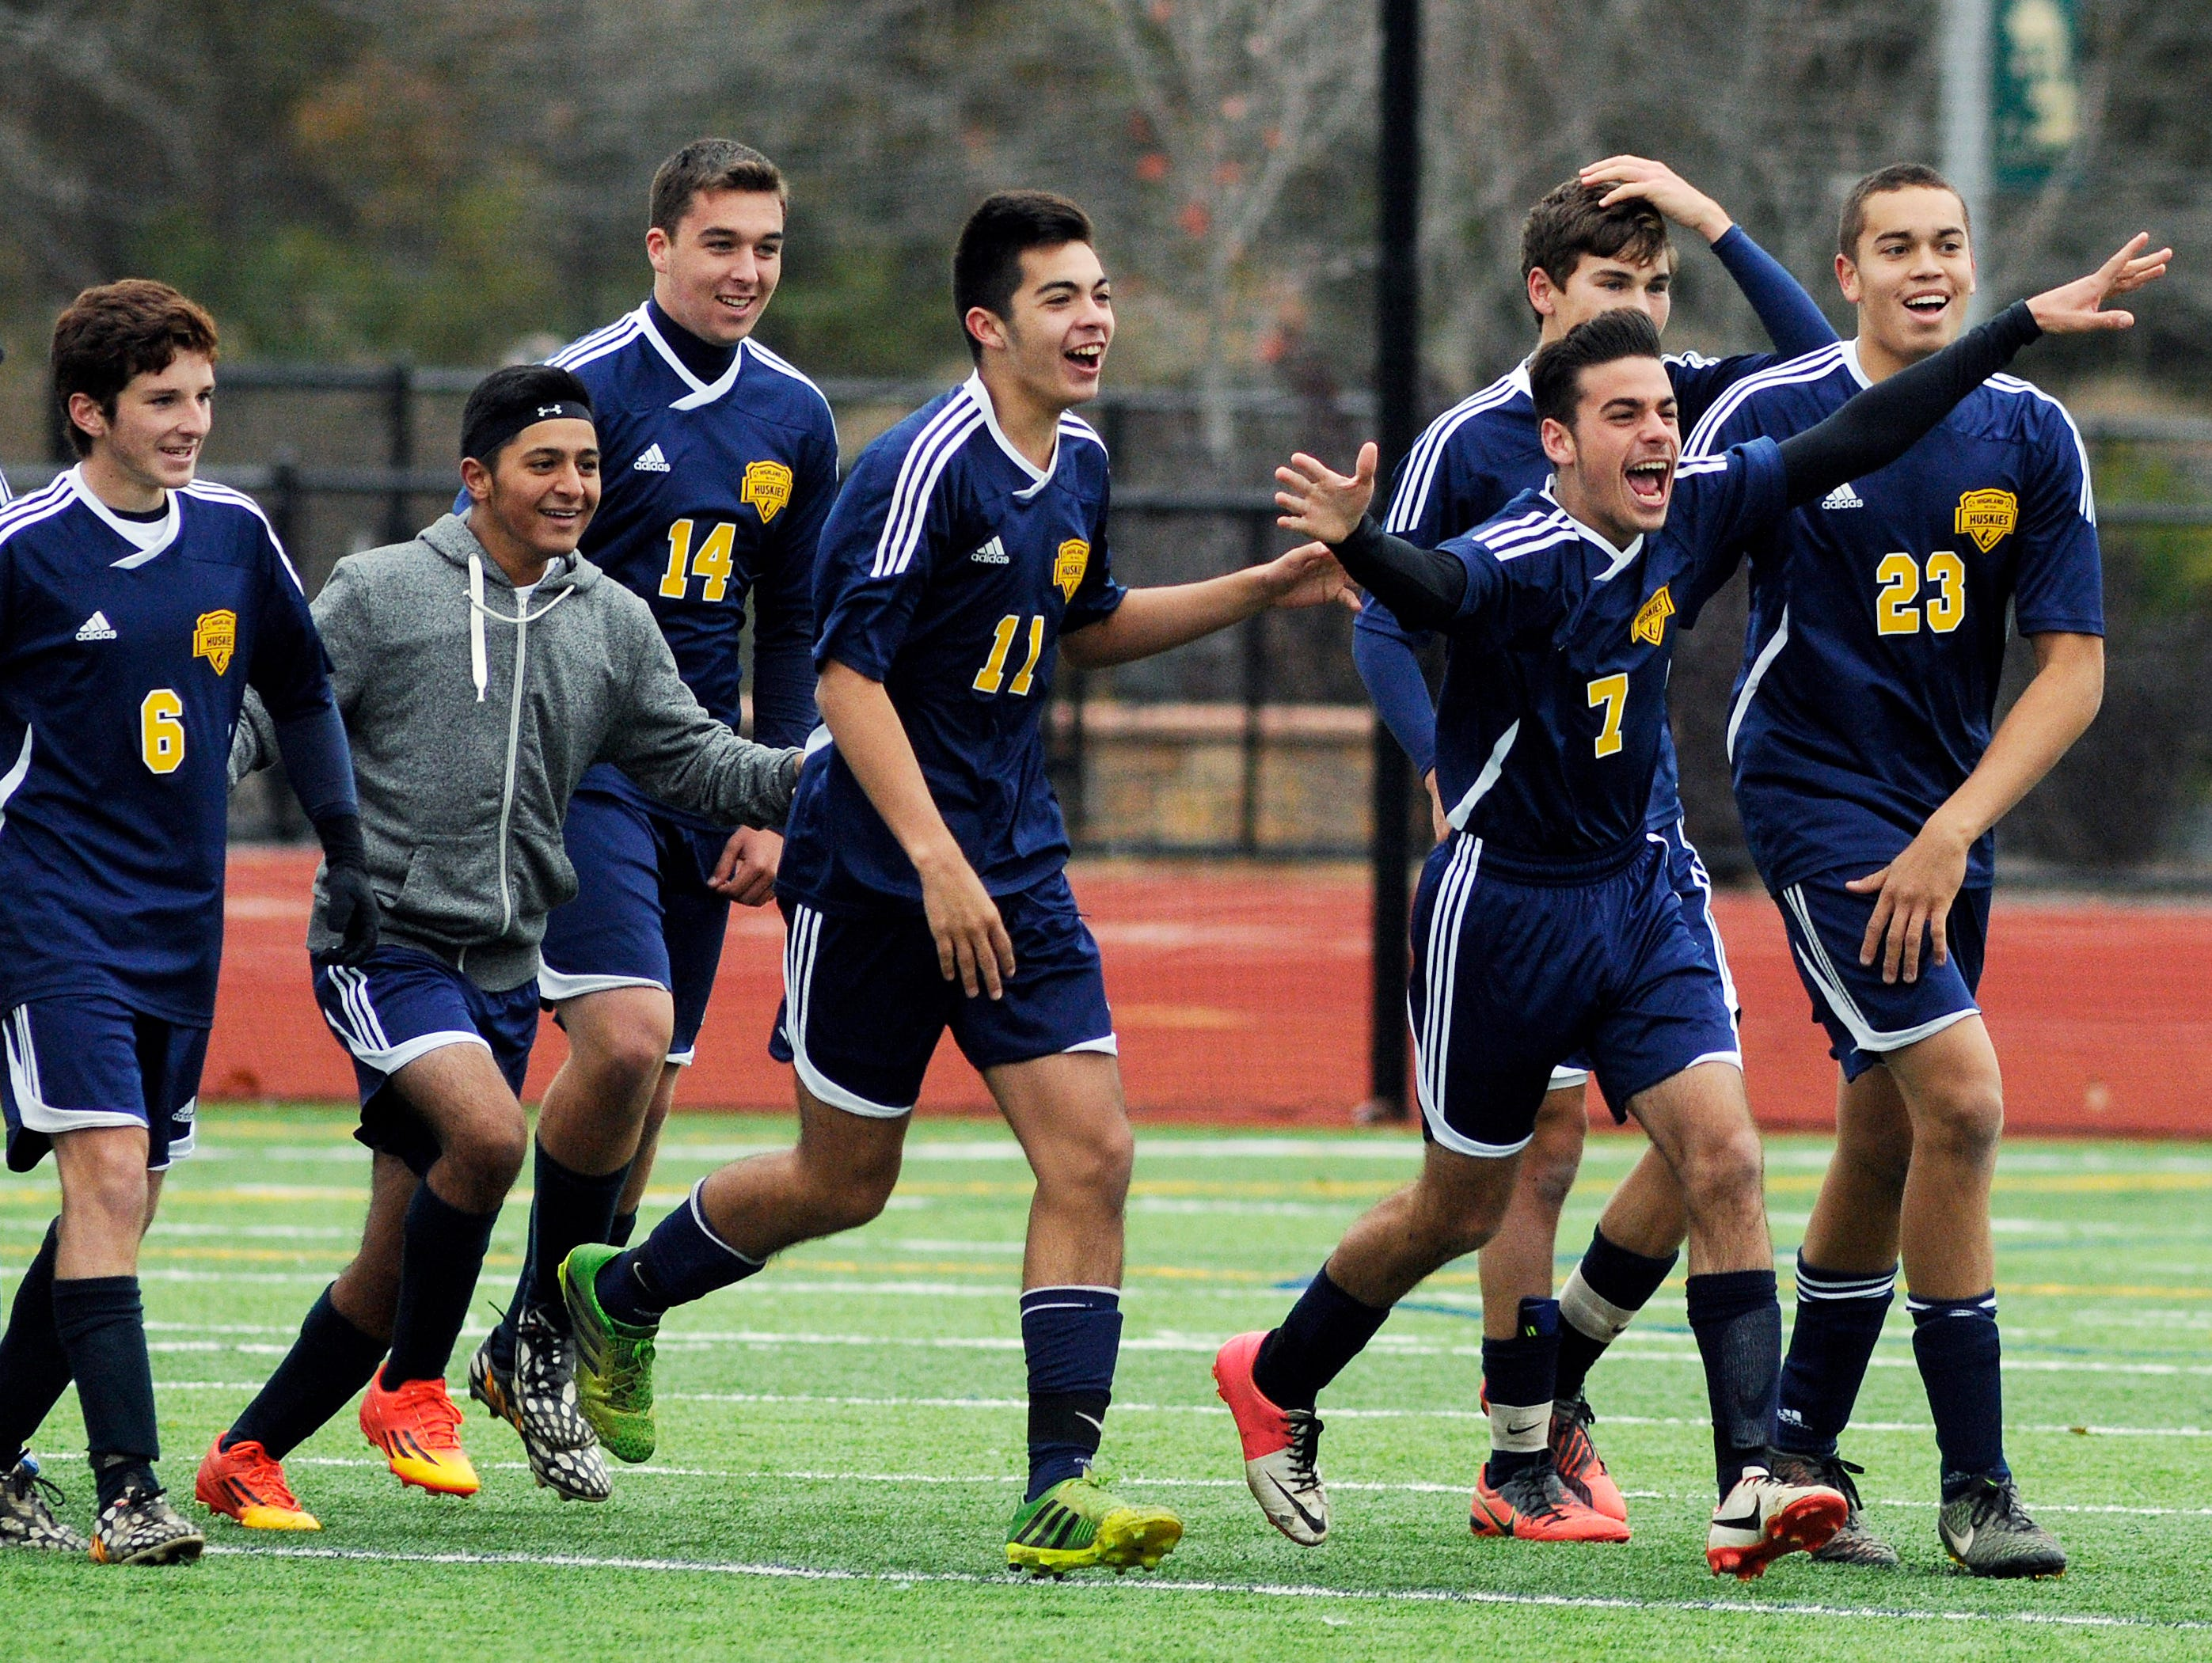 The Highland High School soccer team reacts after defeating Onteora for the Section 9 Class B championship on Nov. 1, 2014 in Hyde Park.